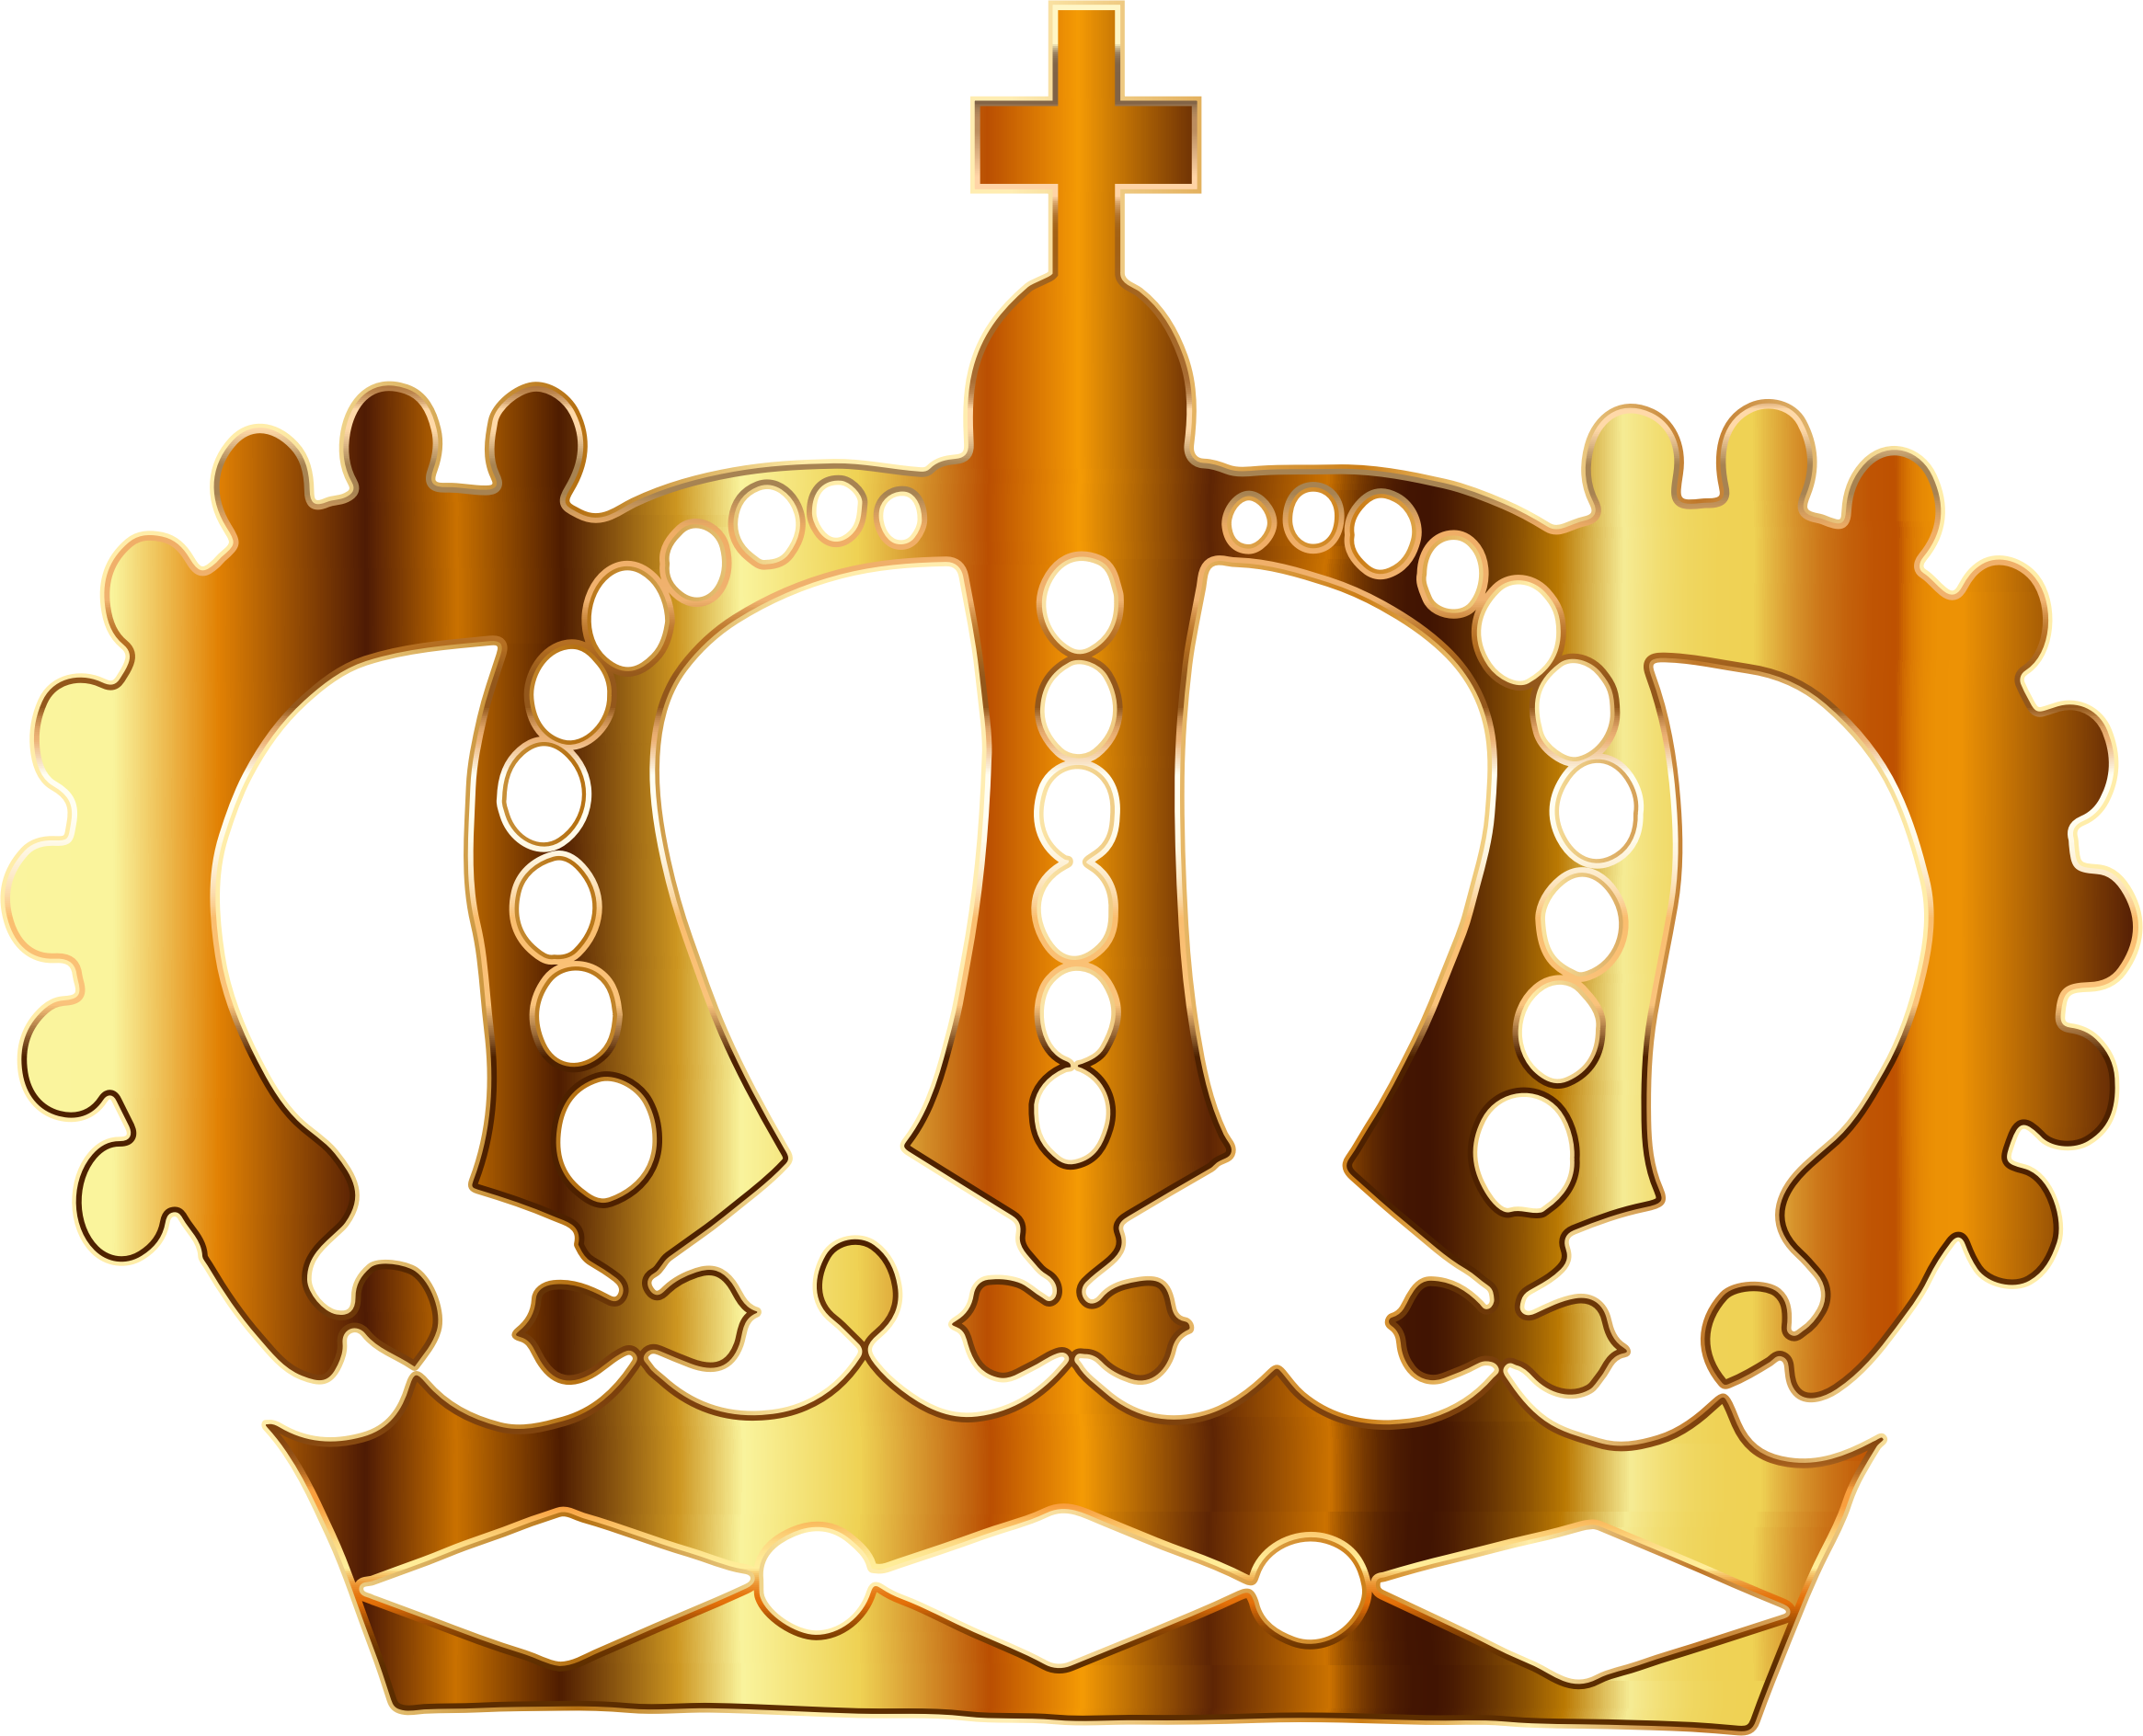 Pageant crown clipart vector free download King crown clipart no background - ClipartFest vector free download